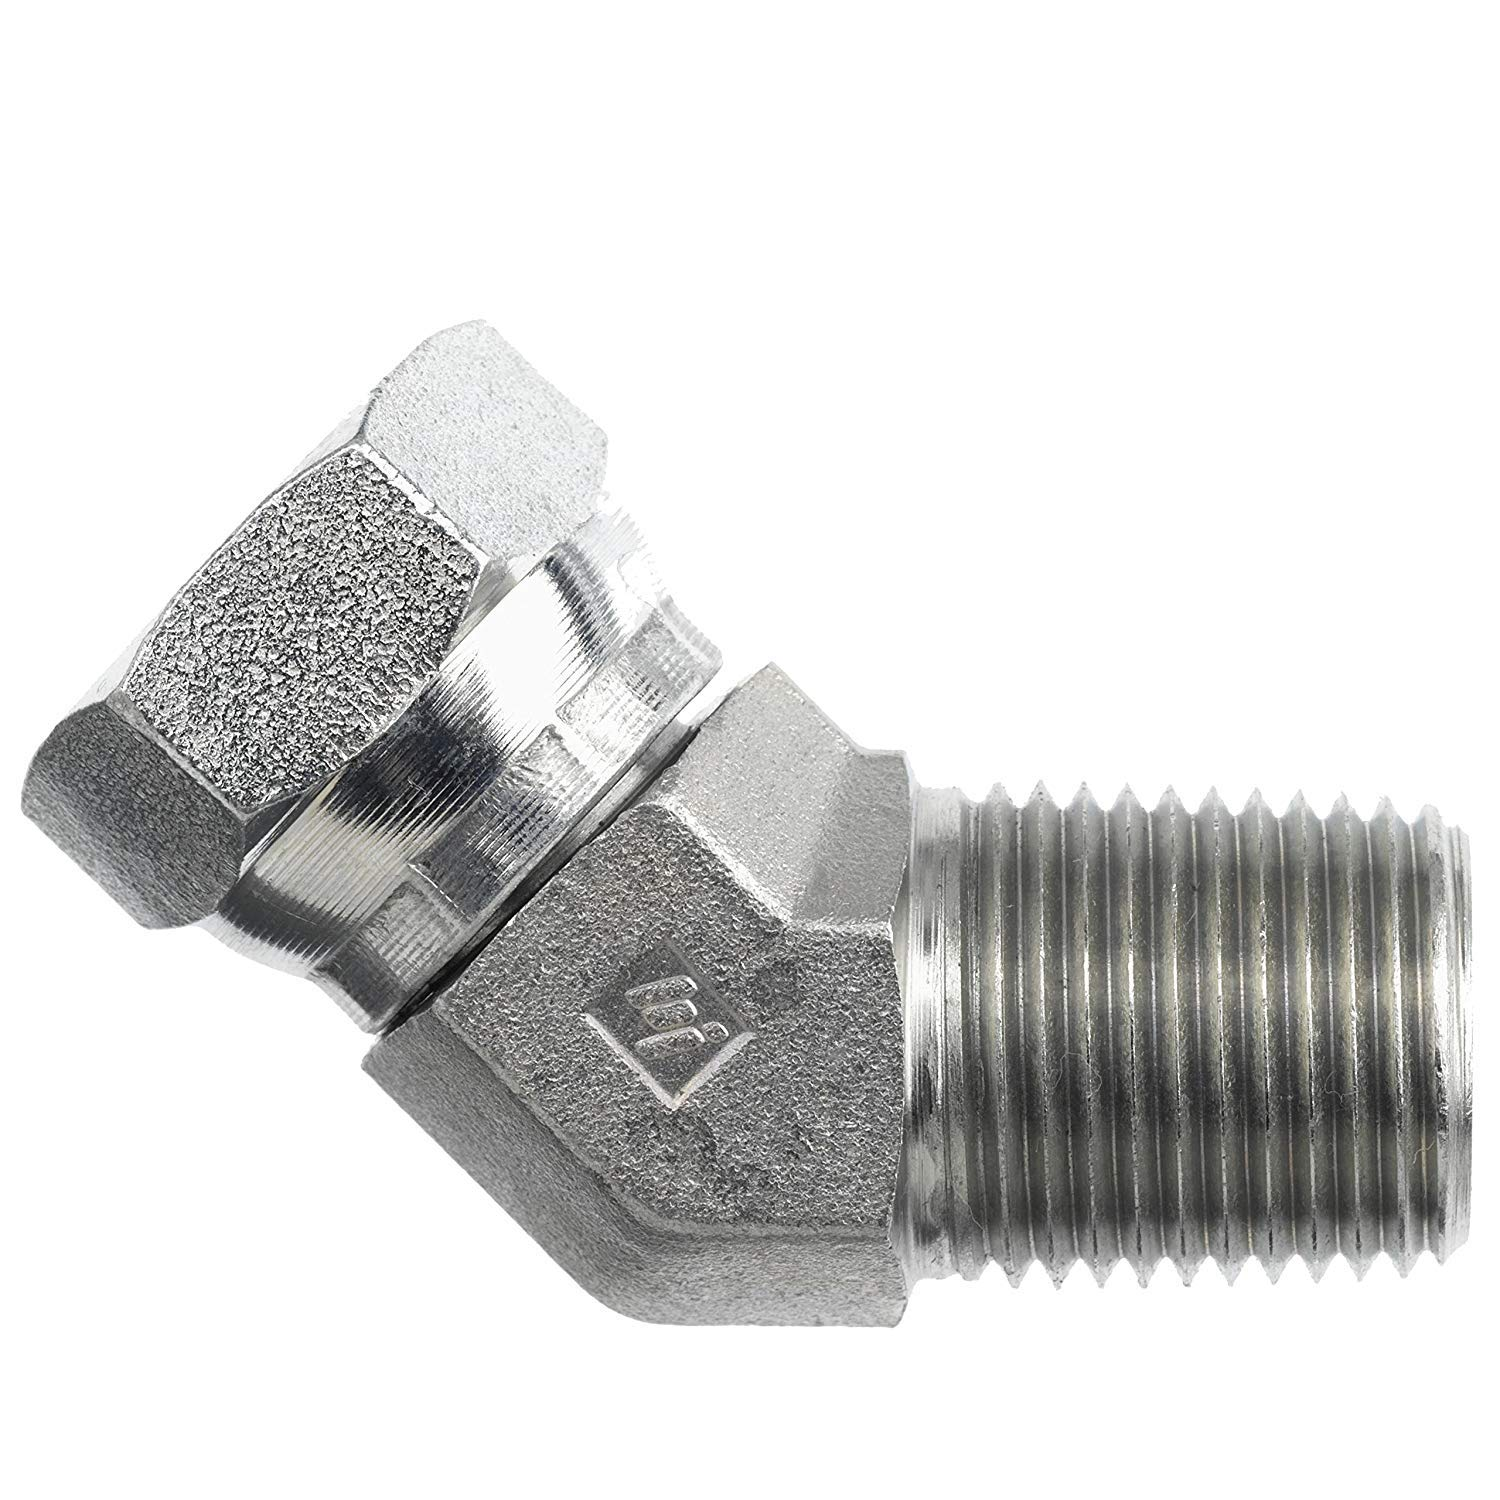 1503-08-08 Hydraulic Fitting 1//2 Male Pipe X 1//2 Female Pipe Swivel 45 Degree Degree Carbon Steel